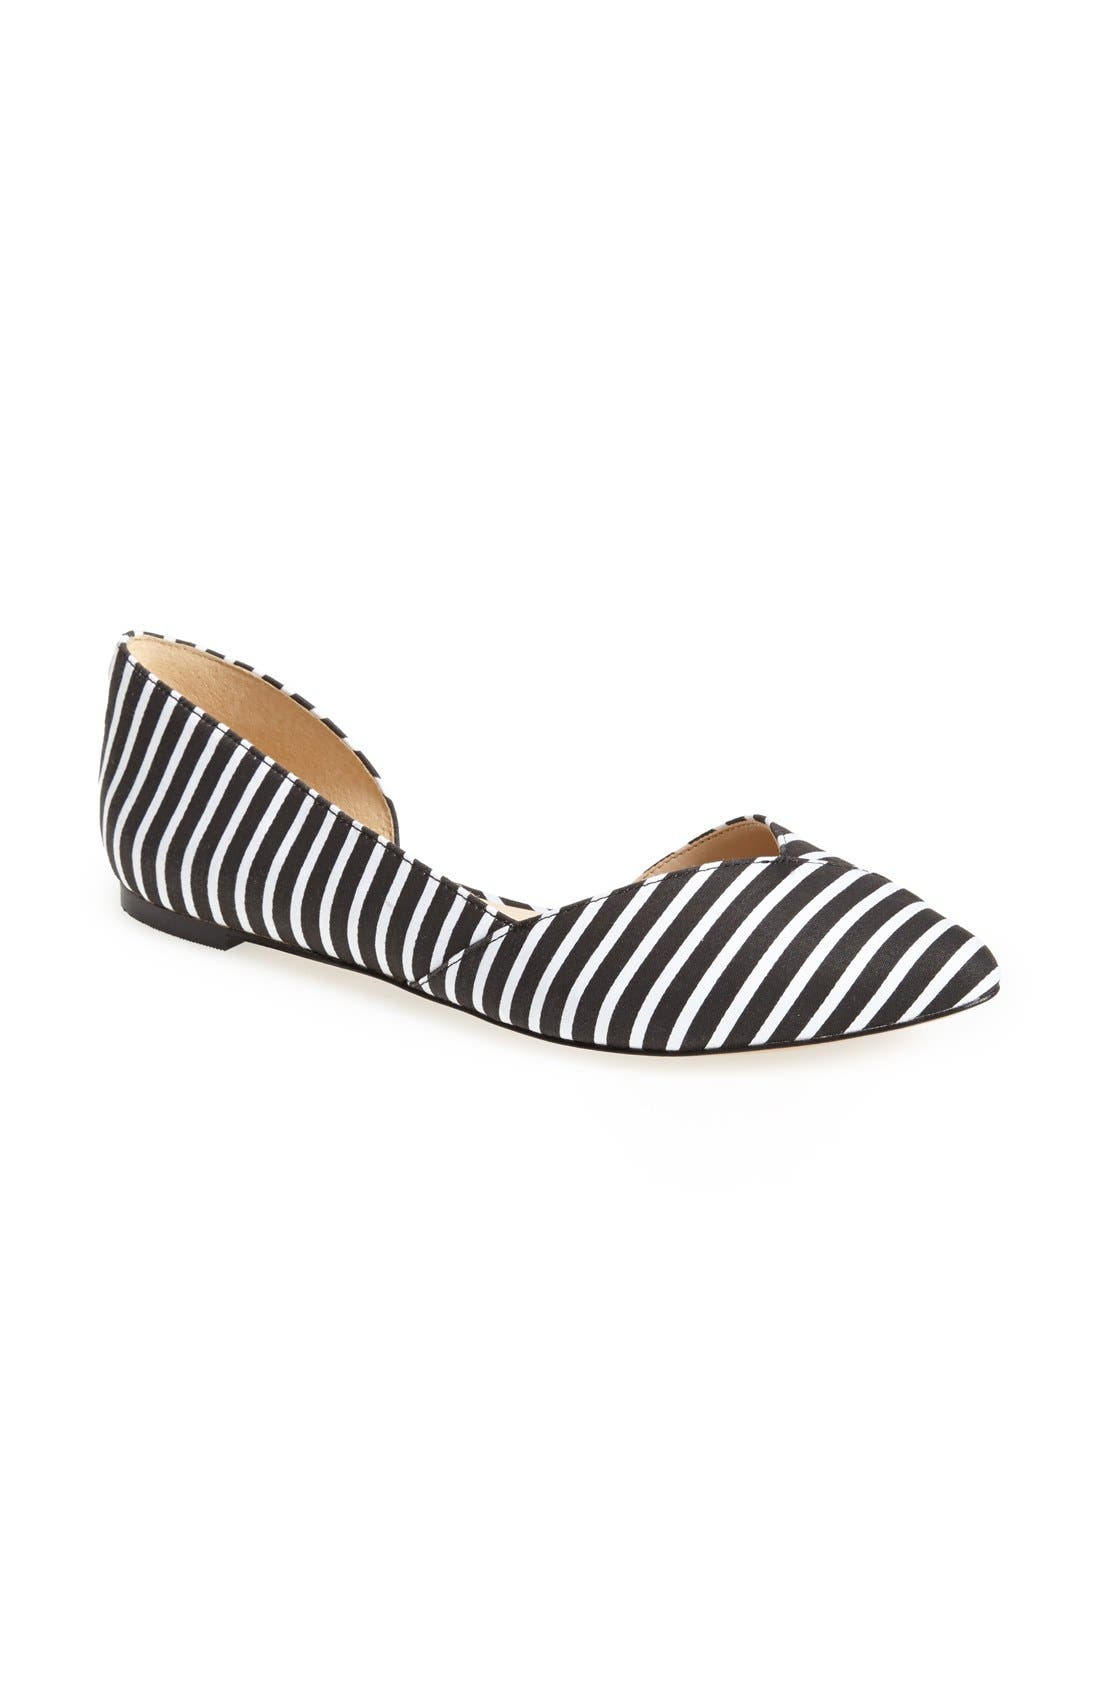 Main Image - Sole Society 'Danielle' Pointy Toe Flat (Women)